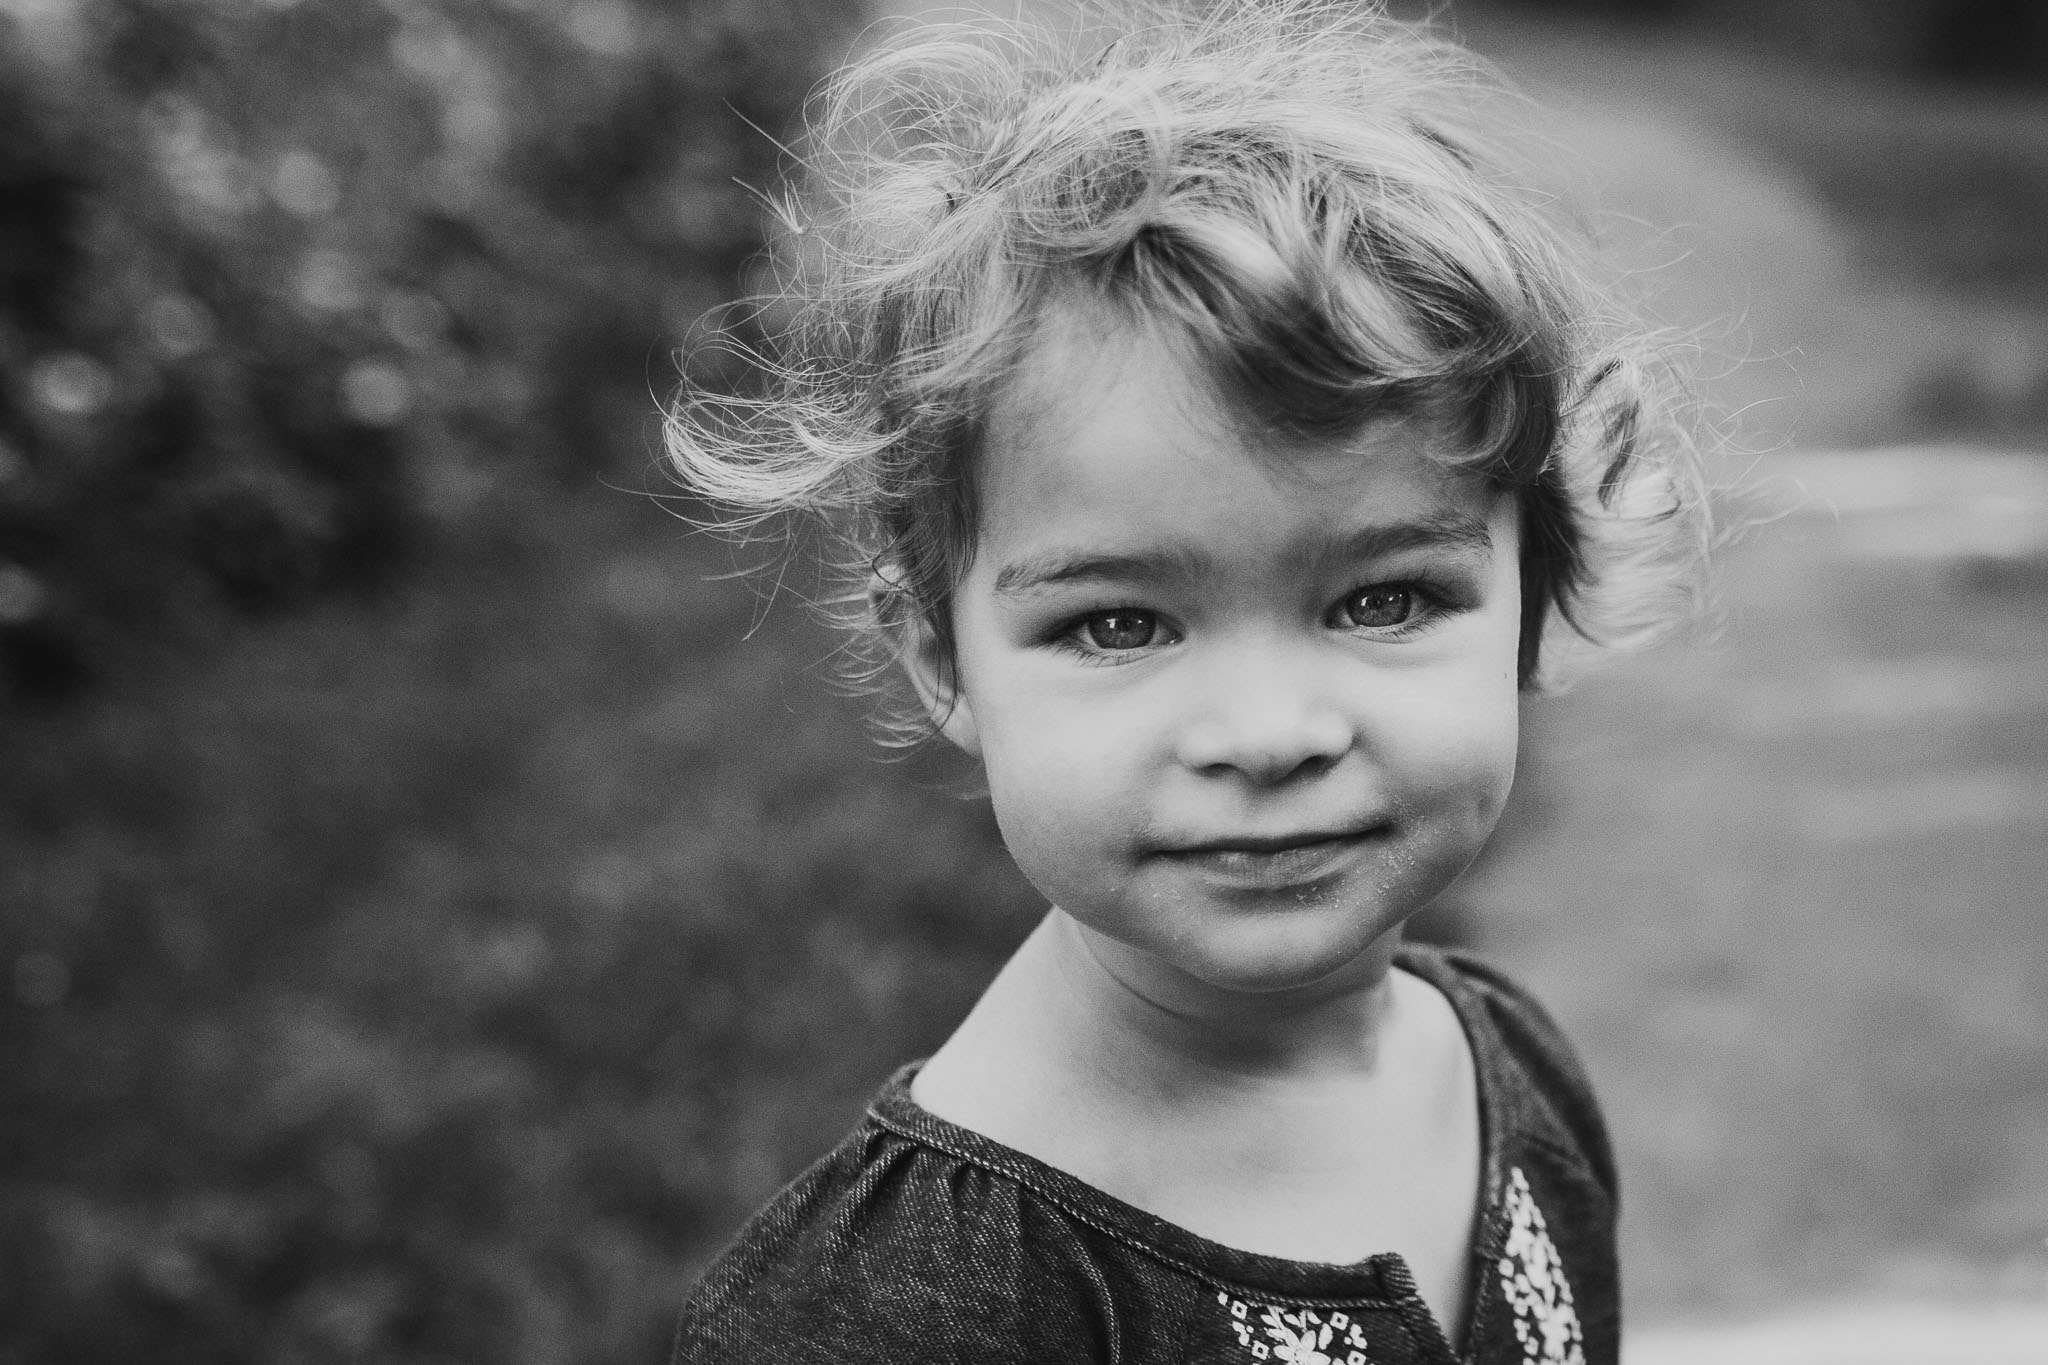 black and white portrait of a toddler girl at Bles Park in Ashburn, Virginia